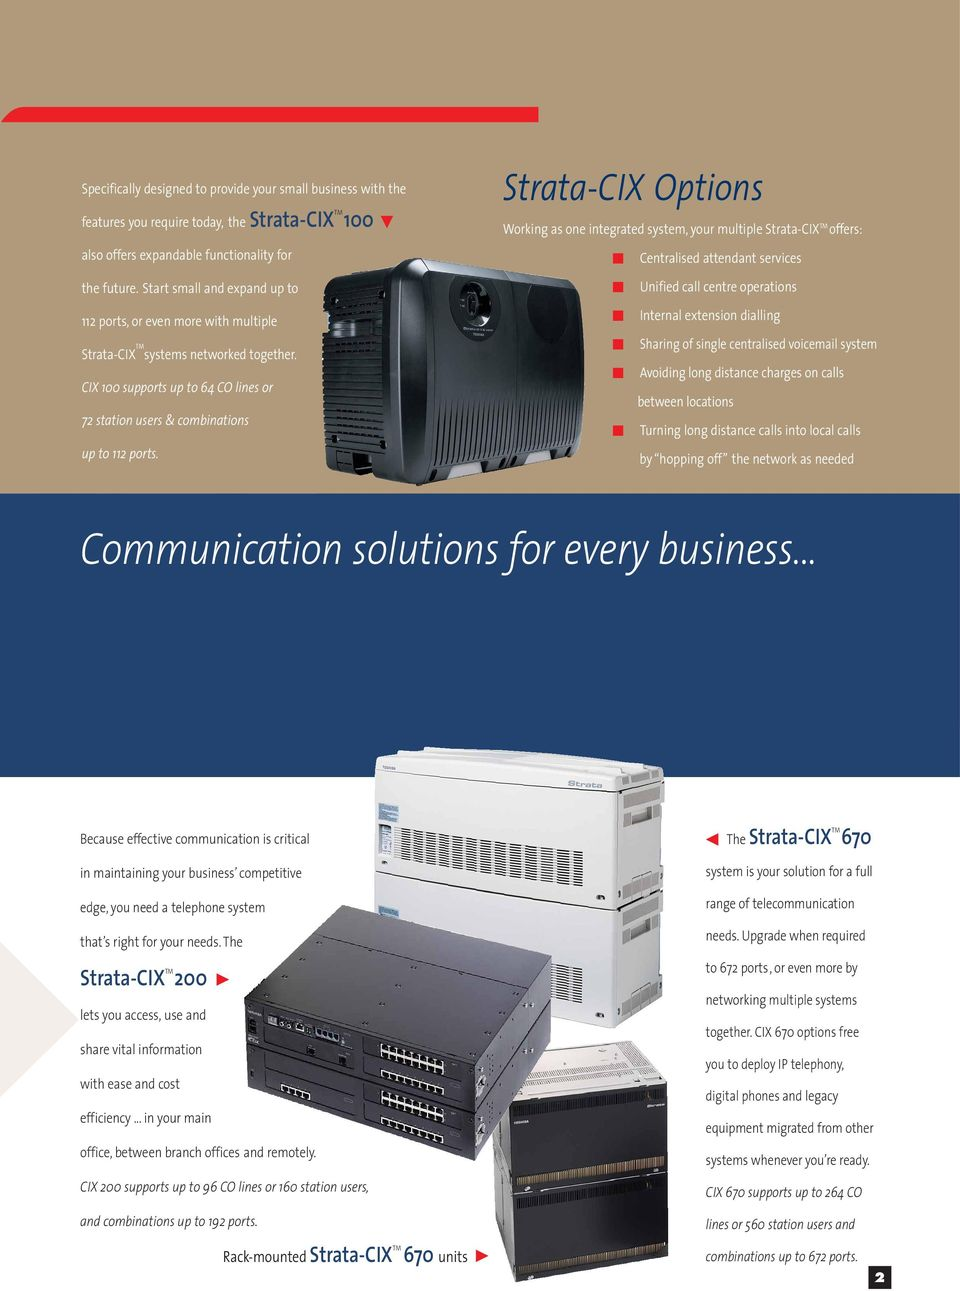 CIX 100 supports up to 64 CO lines or 72 station users & combinations up to 112 ports.